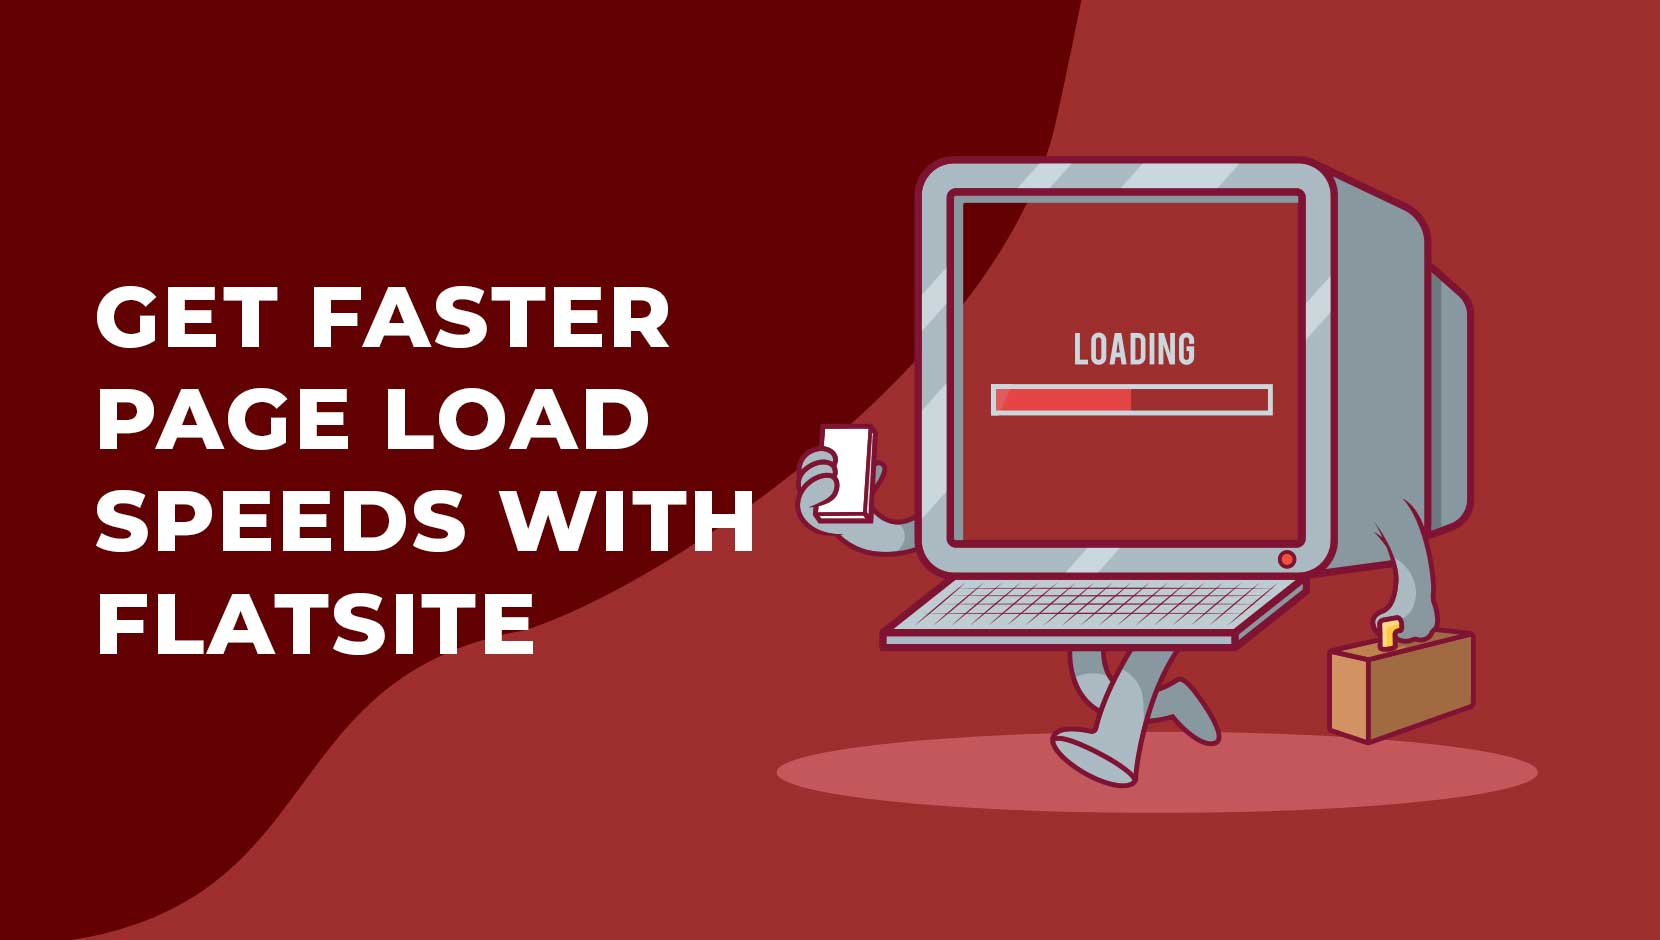 Get Faster Page Load Speeds with FLATsite